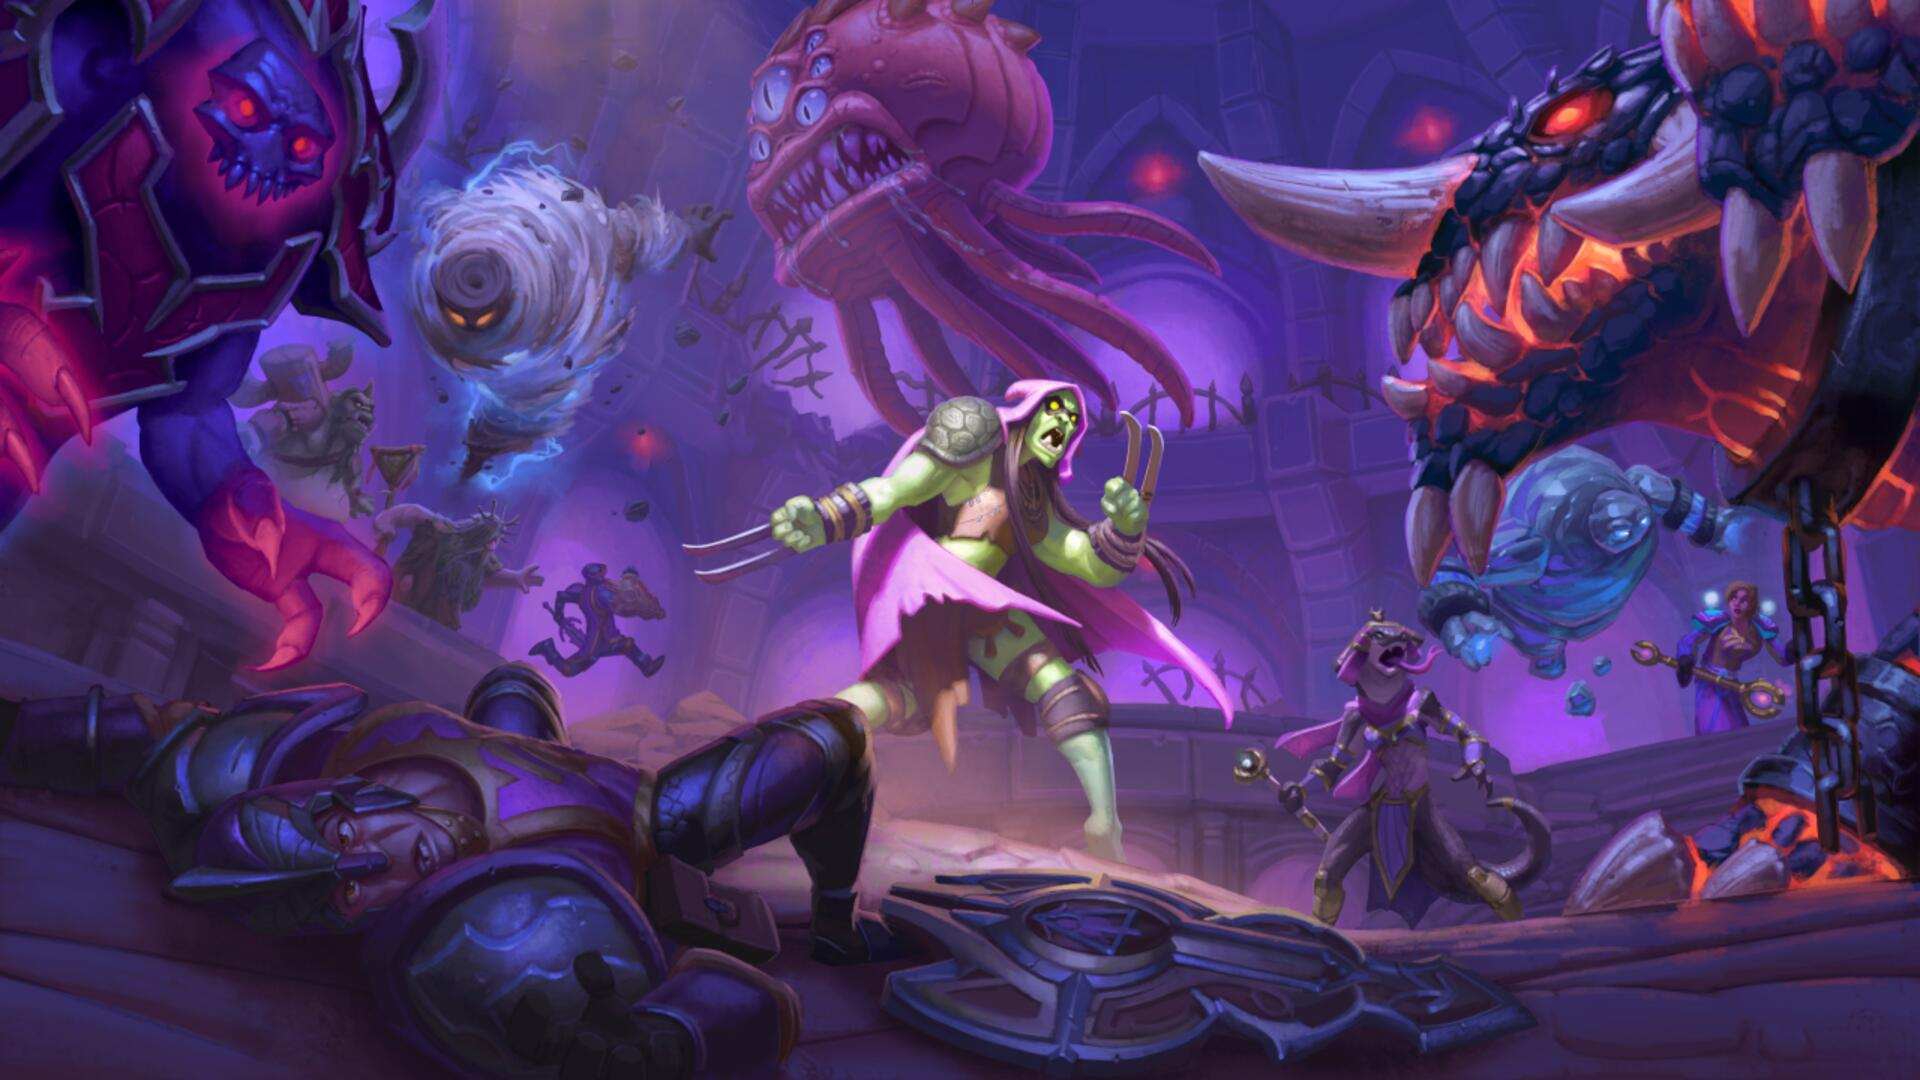 Hearthstone Swaps Around Classic Set, But Initial Reactions Seem Mixed